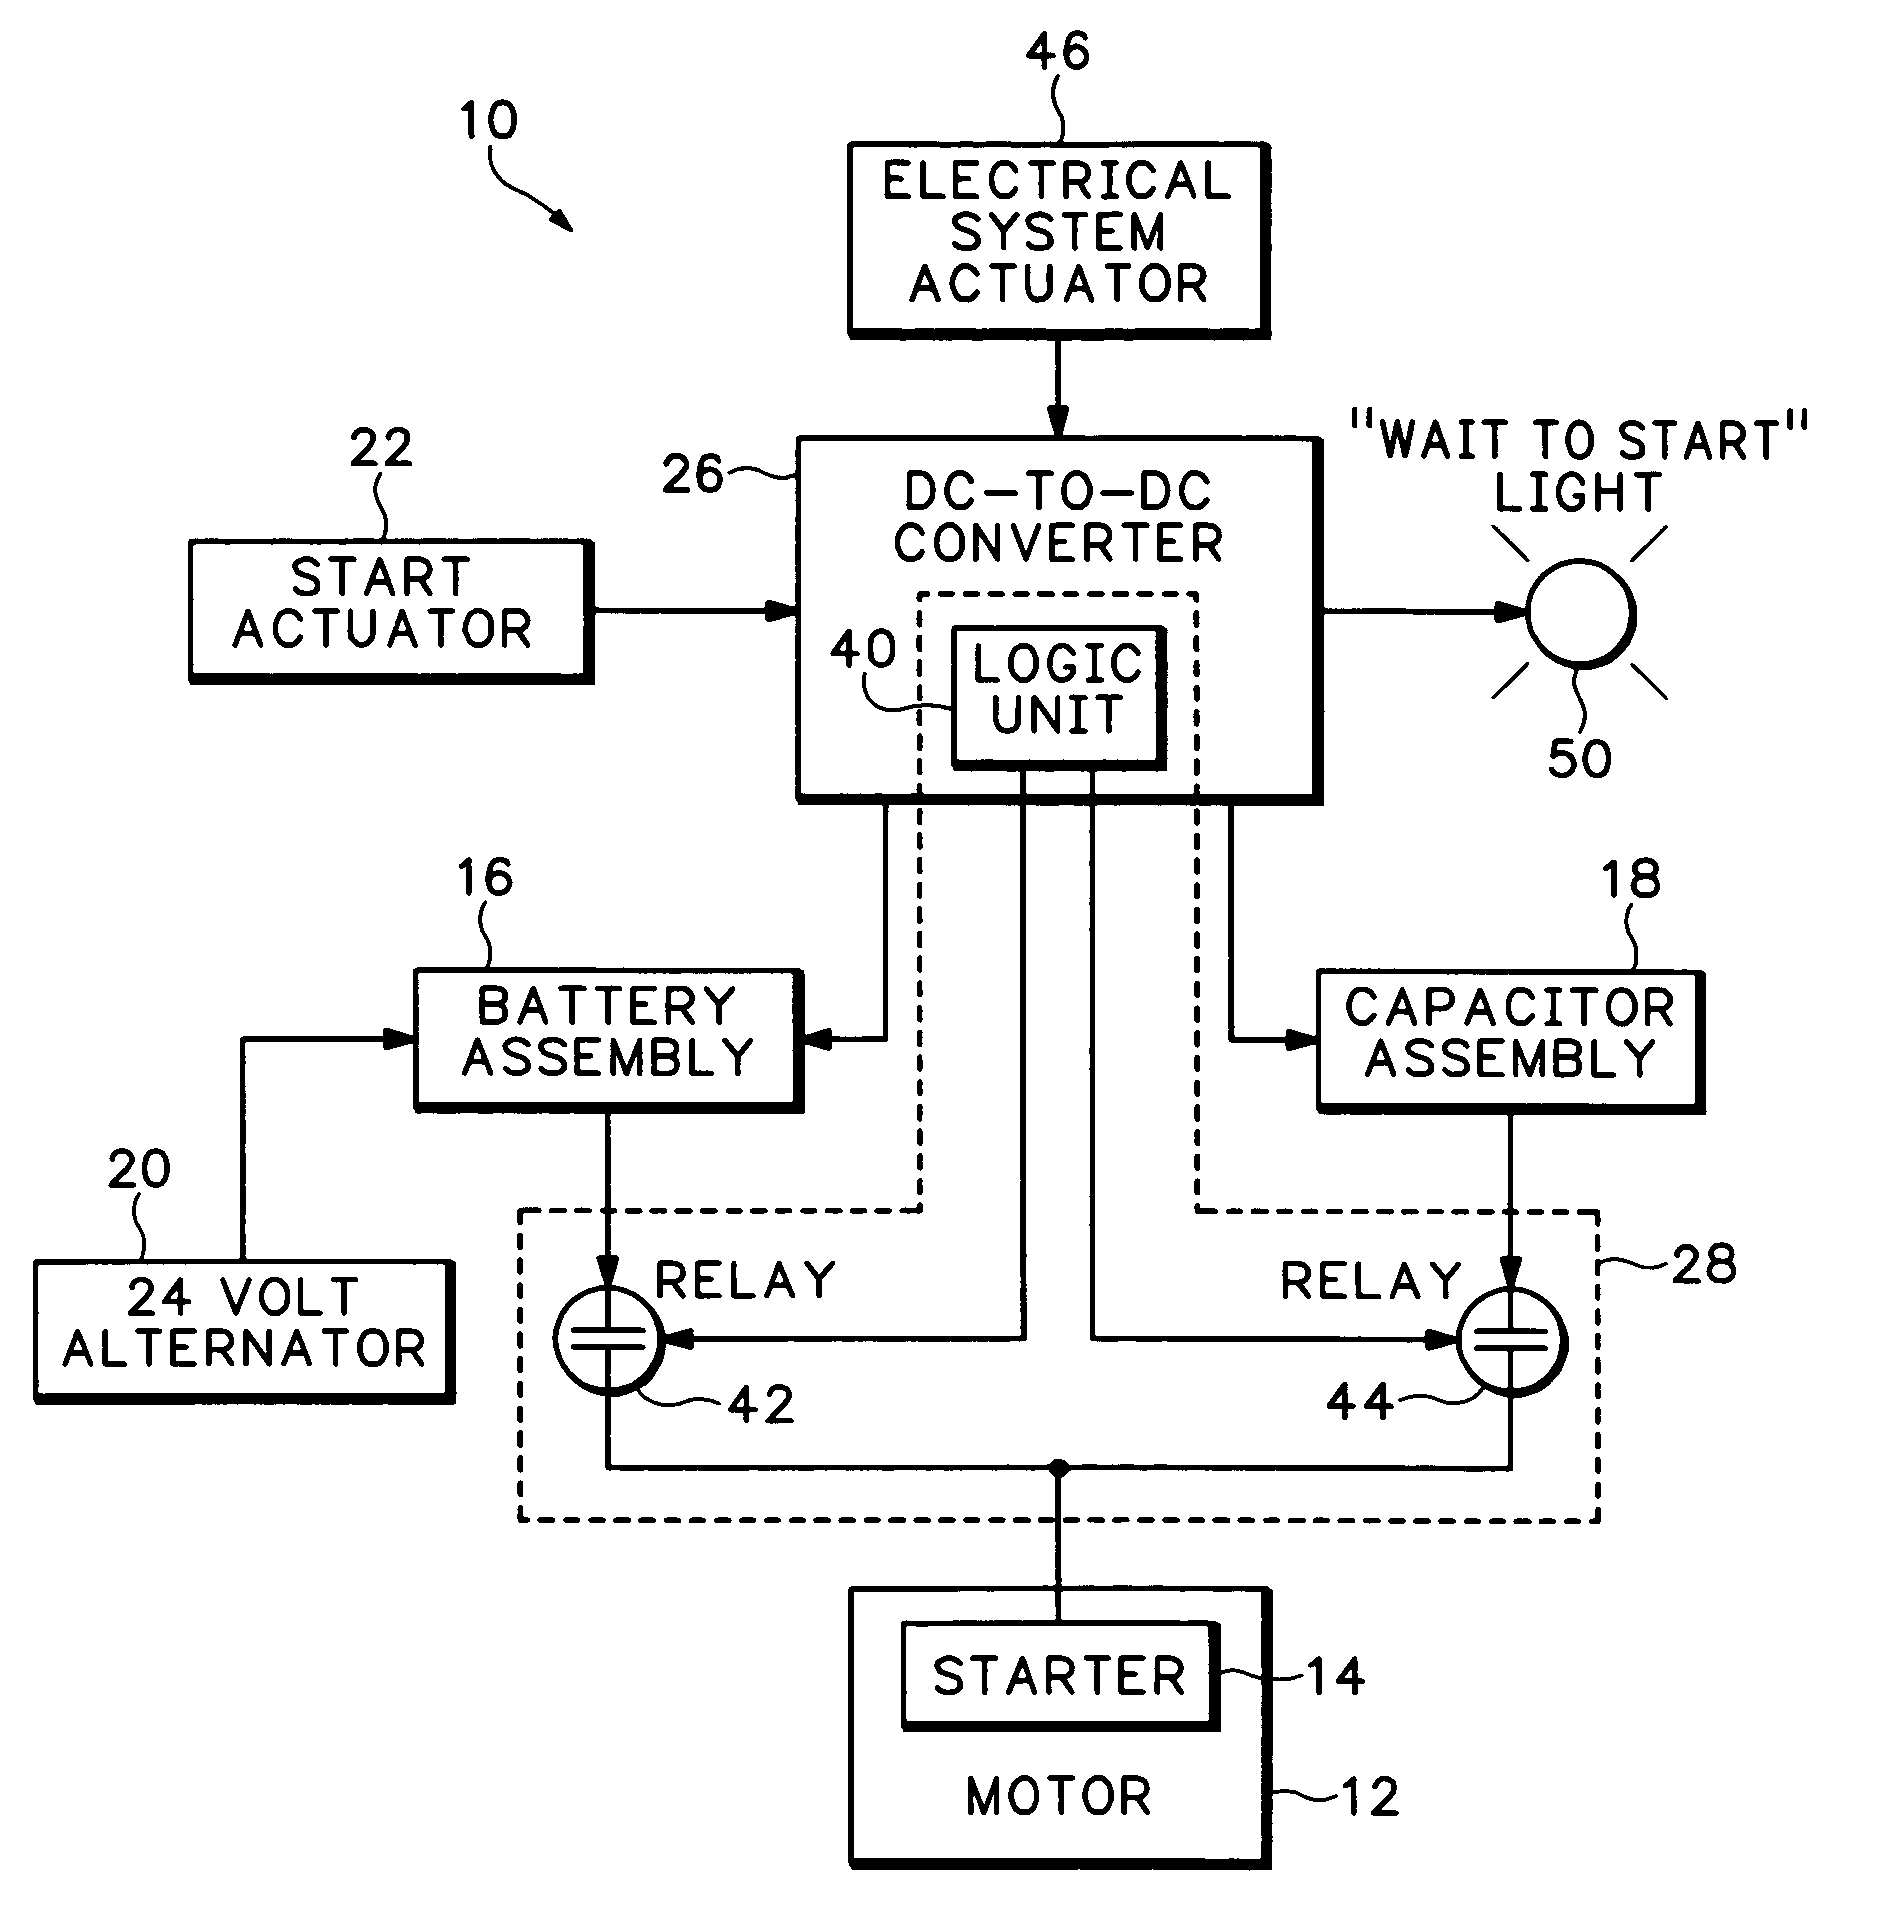 Patent Us7319306 Supercapacitor Engine Starting System With Charge 42 What Happens When A Circuit Is On The Complete Lights Drawing